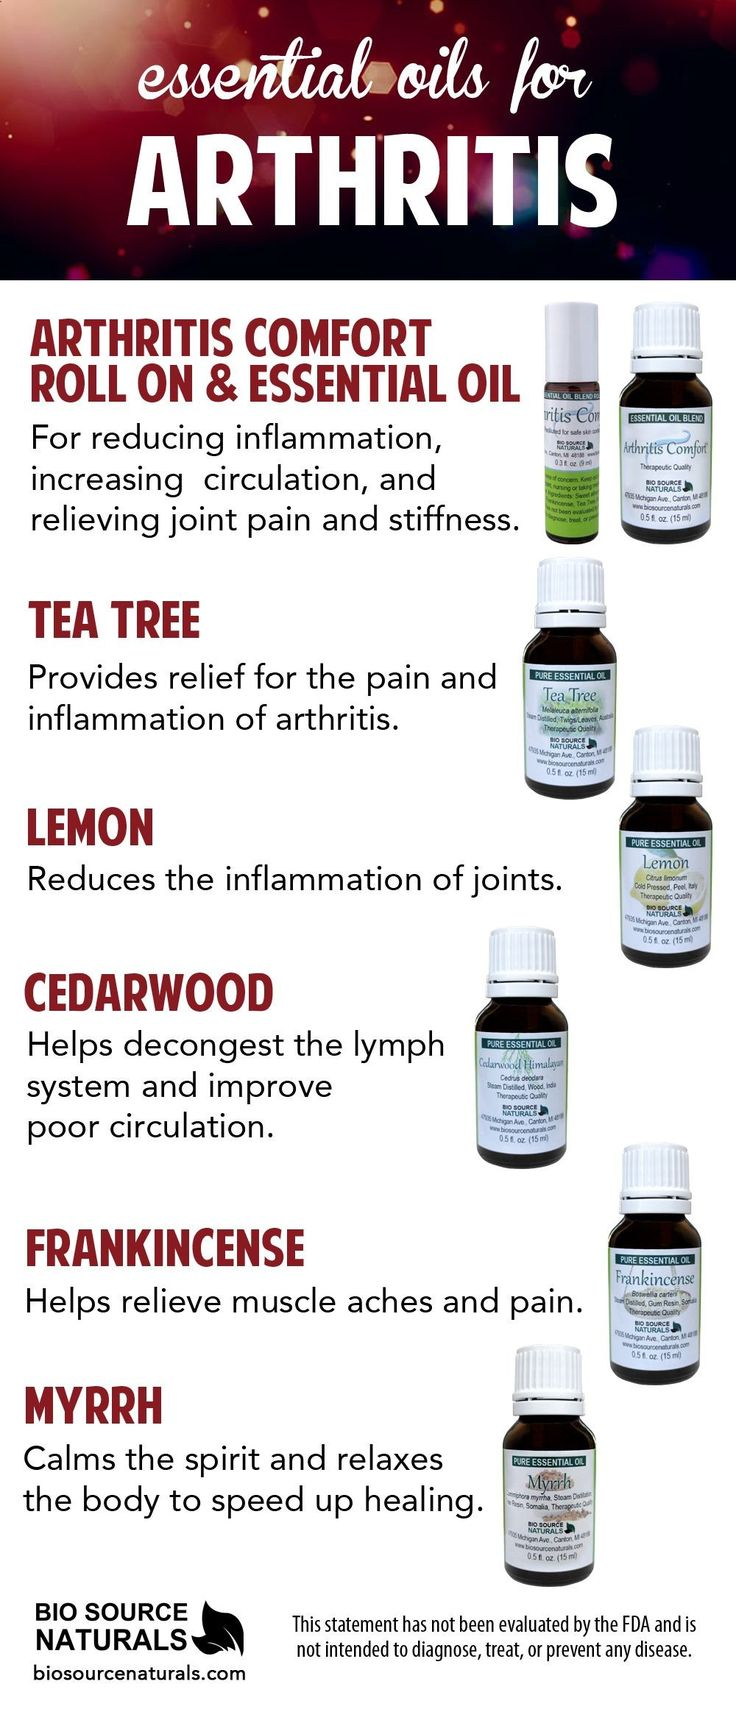 Arthritis Remedies Hands Natural Cures Essential oils for arthritis and inflammation can help to reduce pain and inflammation, increase circulation, decongest lymph, and help relieve joint pain and stiffness.  This statement has not been evaluated by the FDA and is not intended to diagnose, treat, or prevent any disease. #aromatherapy Arthritis Remedies Hands Natural Cures